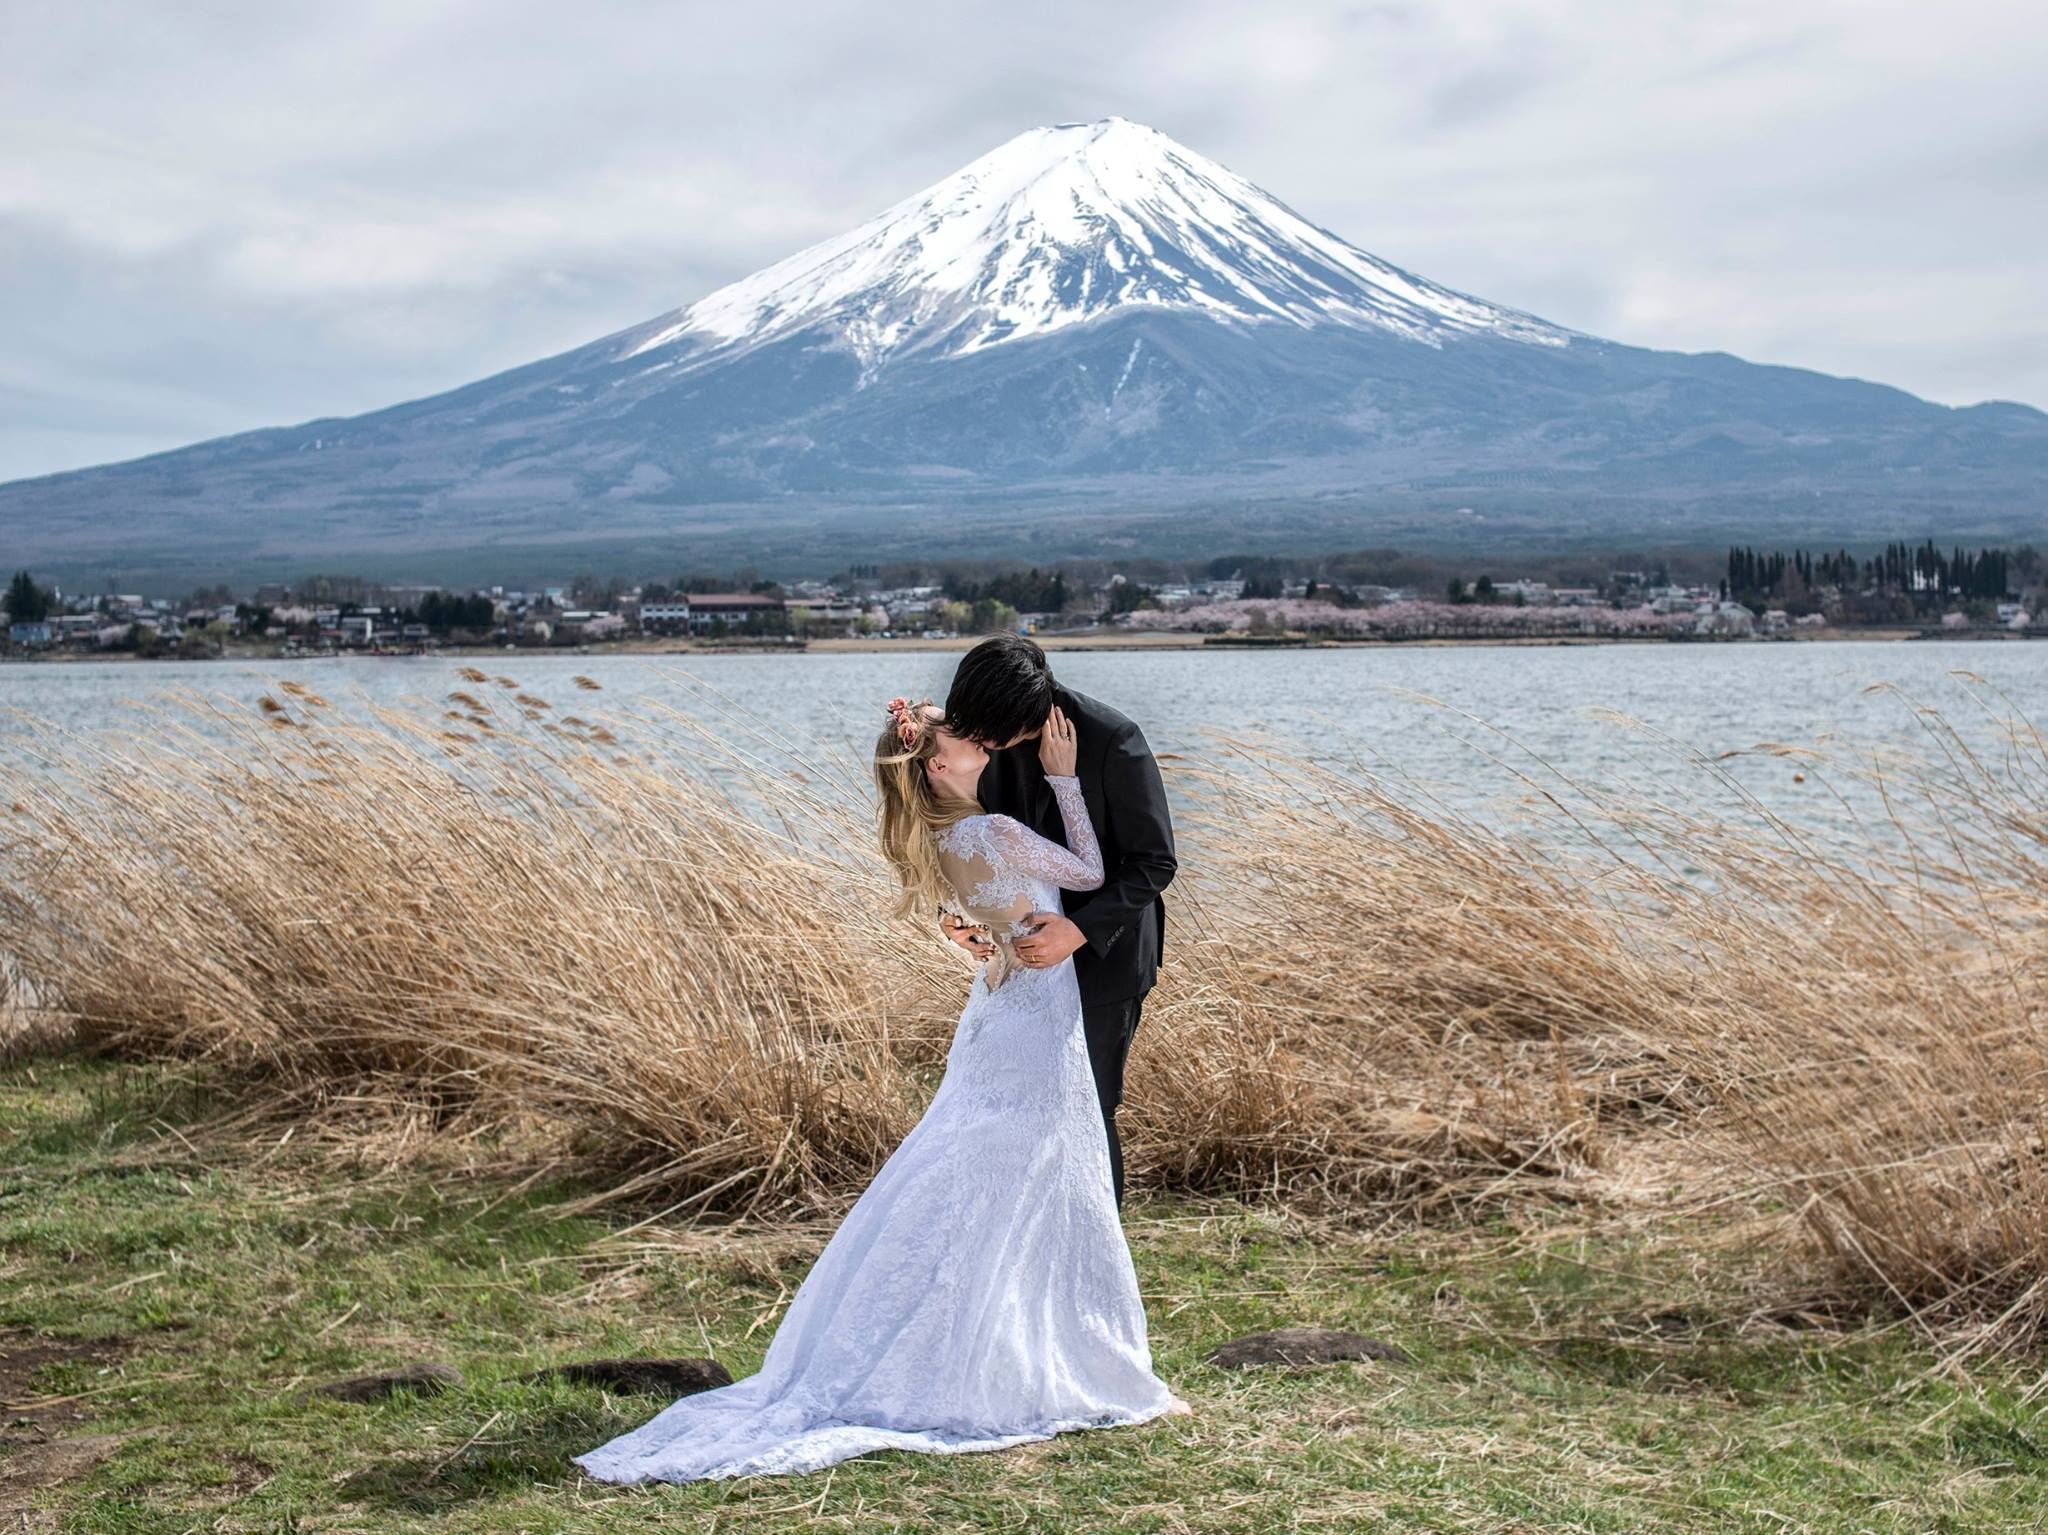 The couple in front of Mount Fuji in Japan.